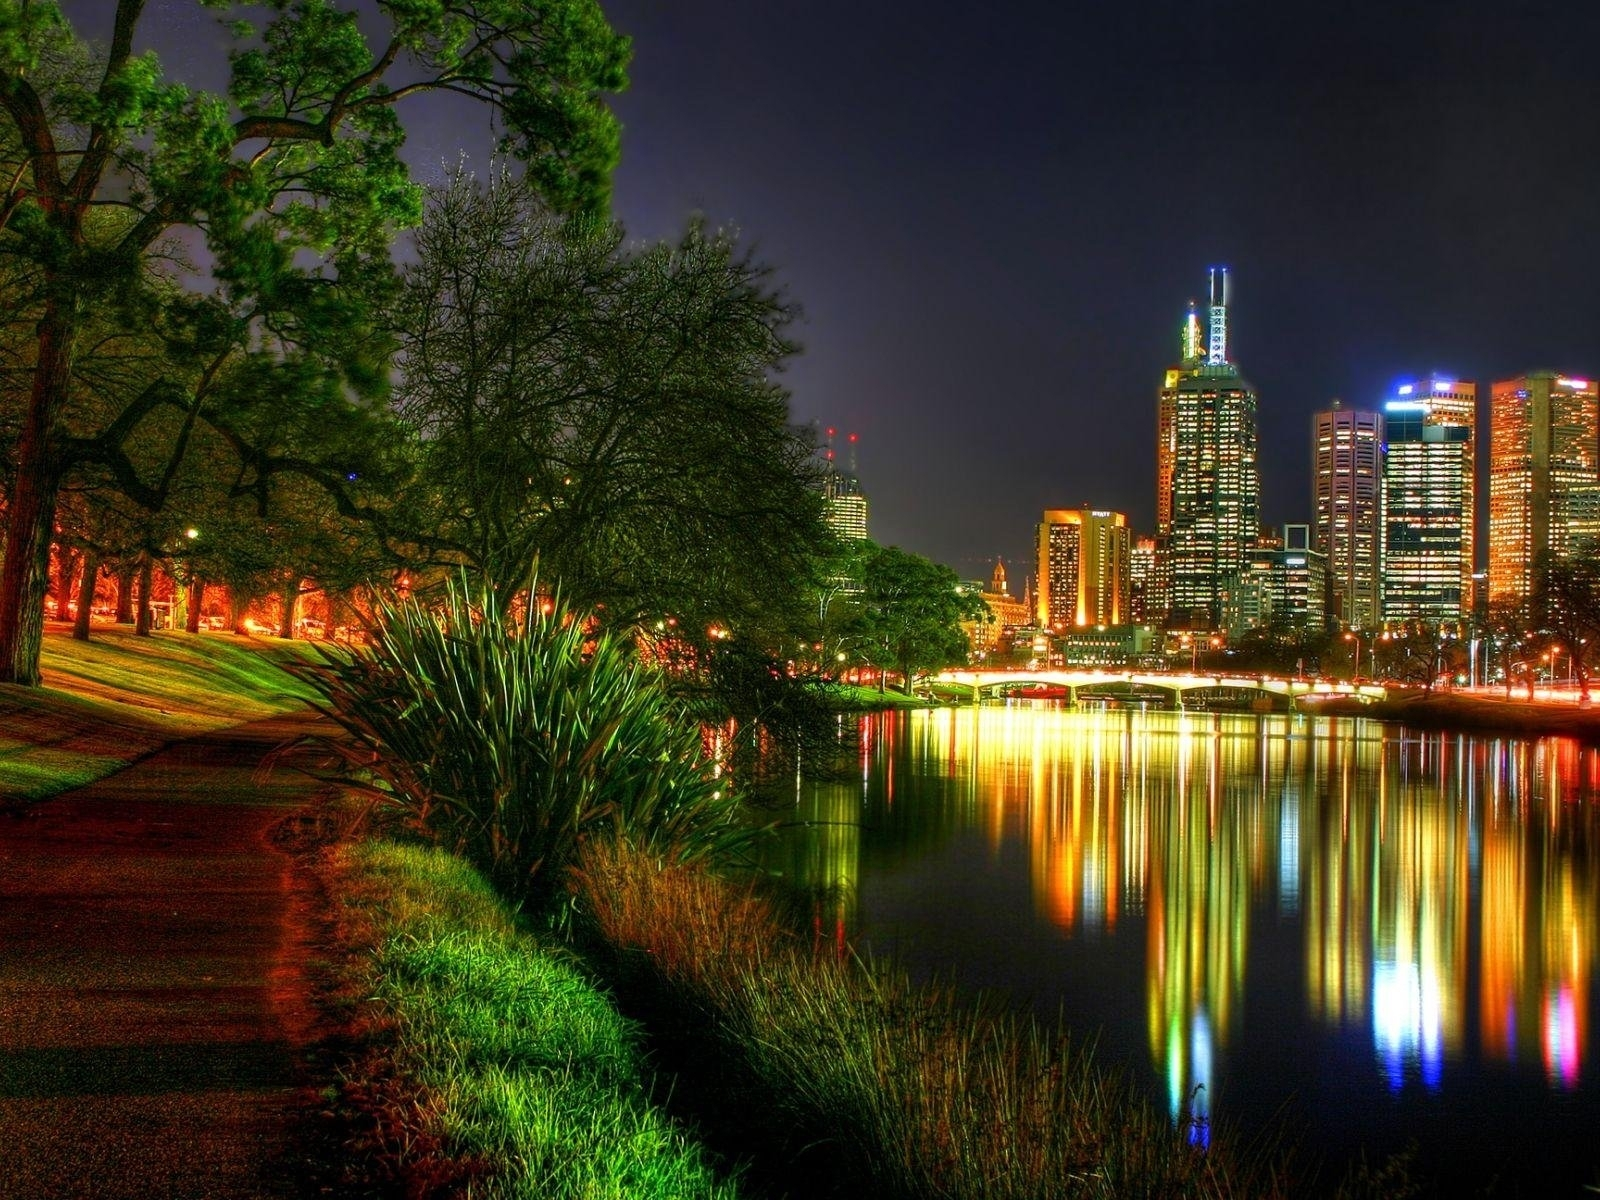 Download mobile wallpaper Plants, Landscape, Cities, Rivers, Night for free.